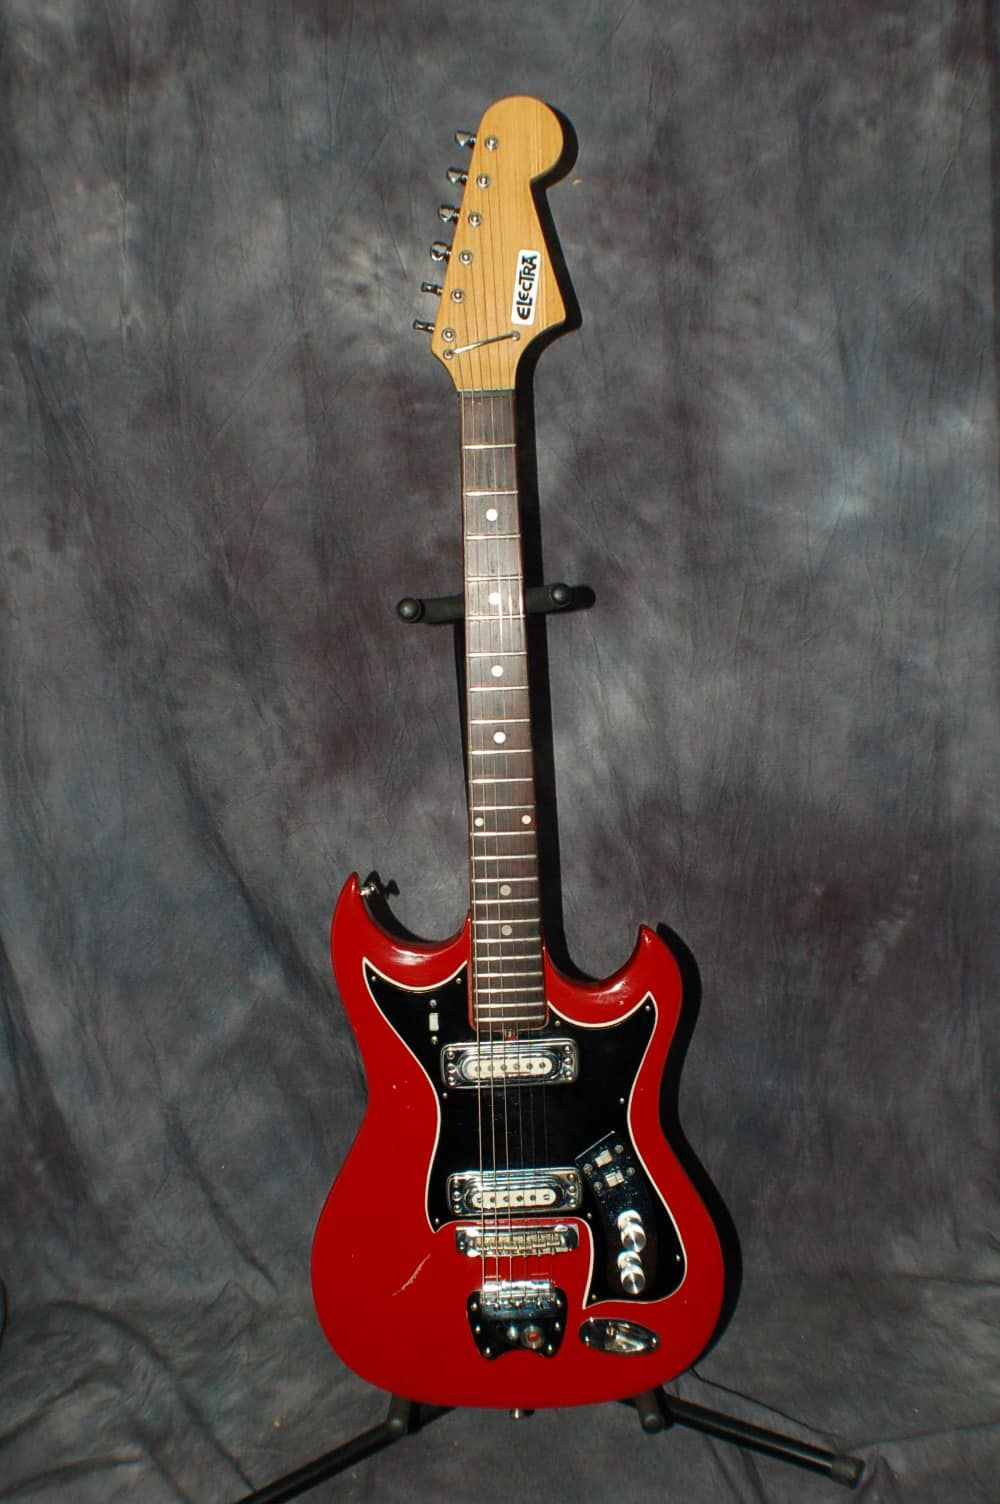 1967 Electra Hagstrom II Copy Made in Japan RED Pro Setup Orig Soft Case